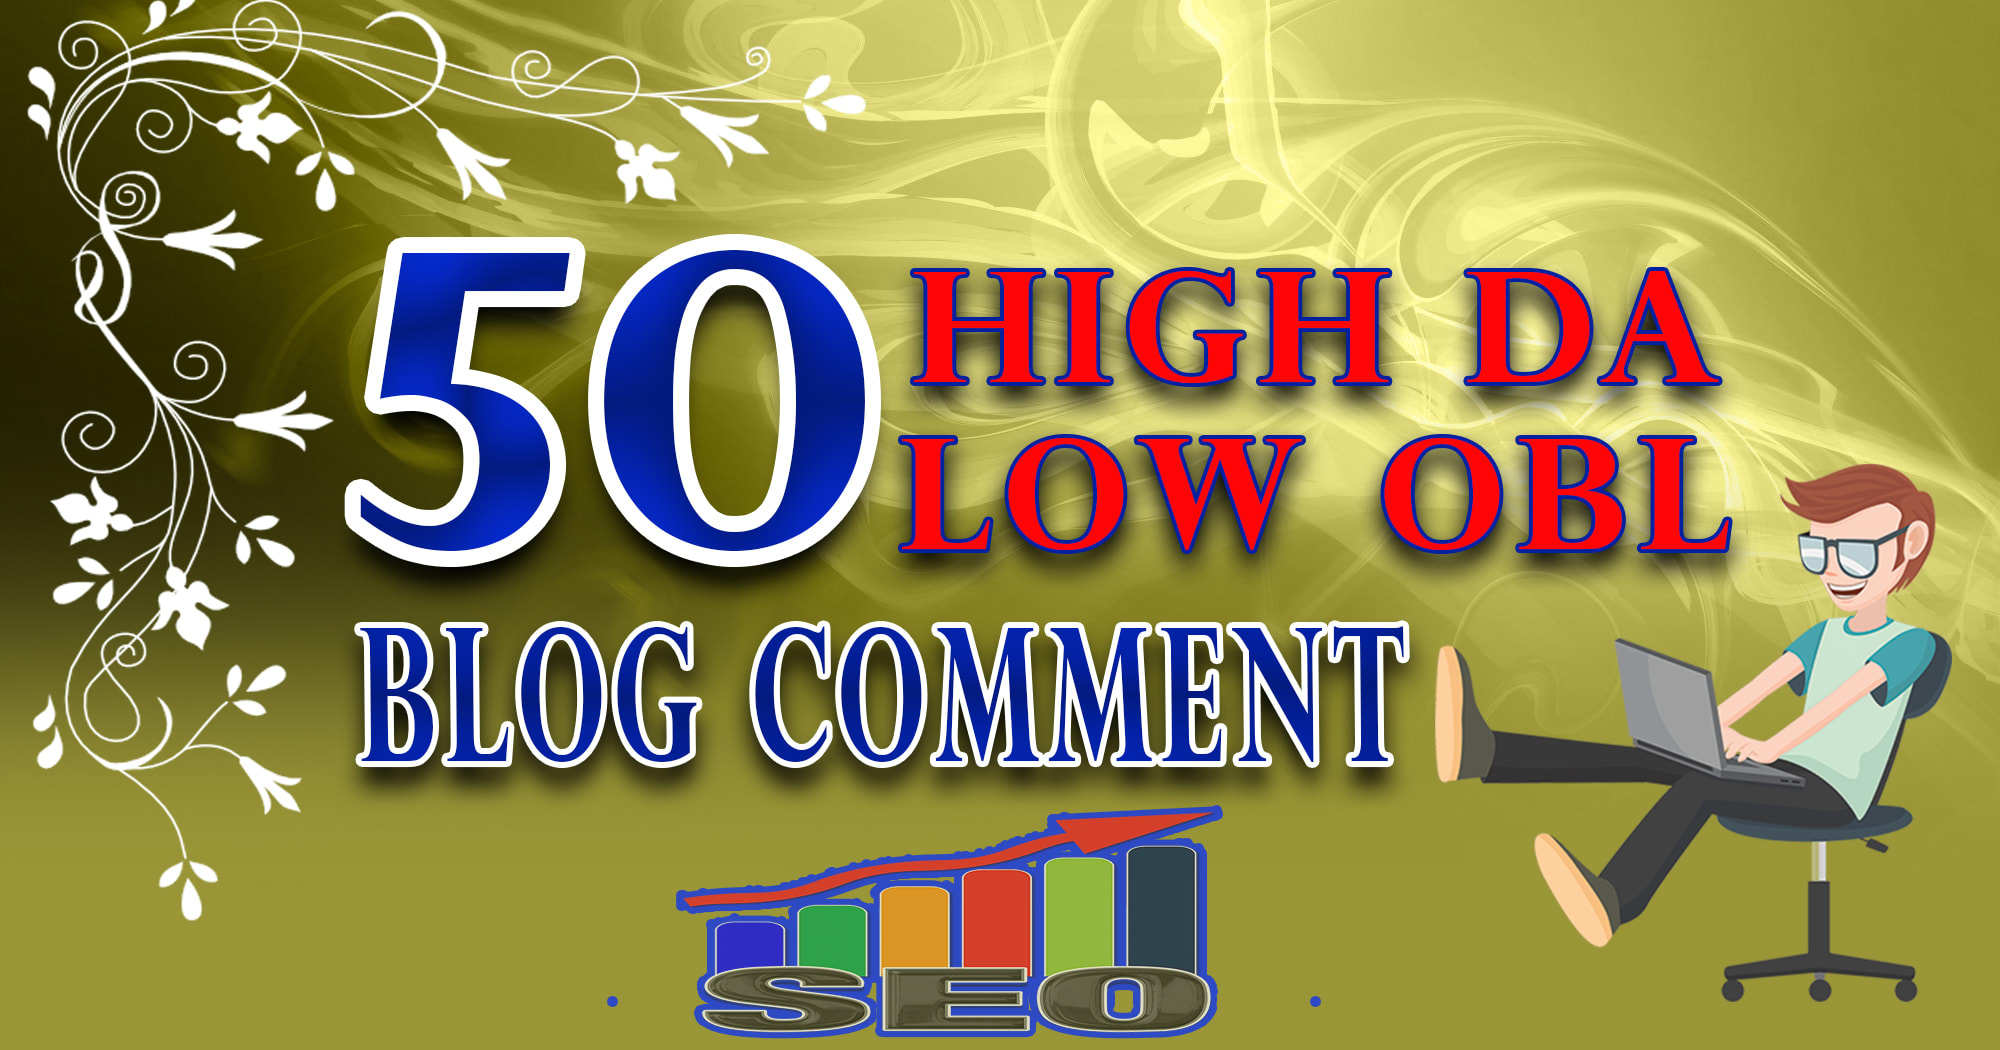 I will do 50 dofollow low obl blog comment